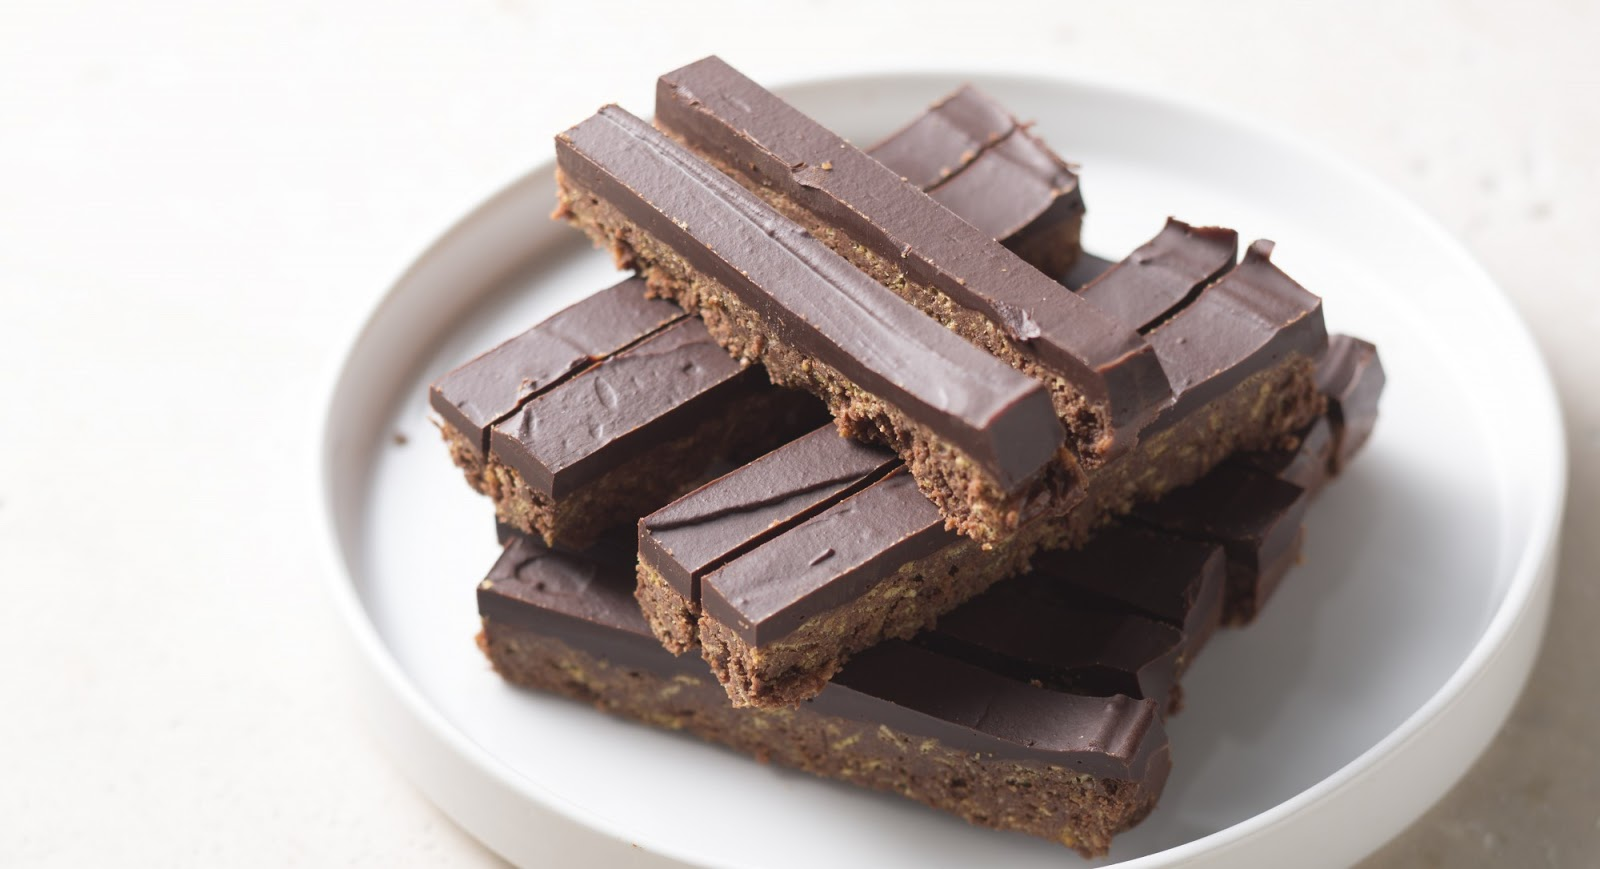 LiveWell Vermont: Homemade Kit Kat Bars - Just in Time for Halloween!